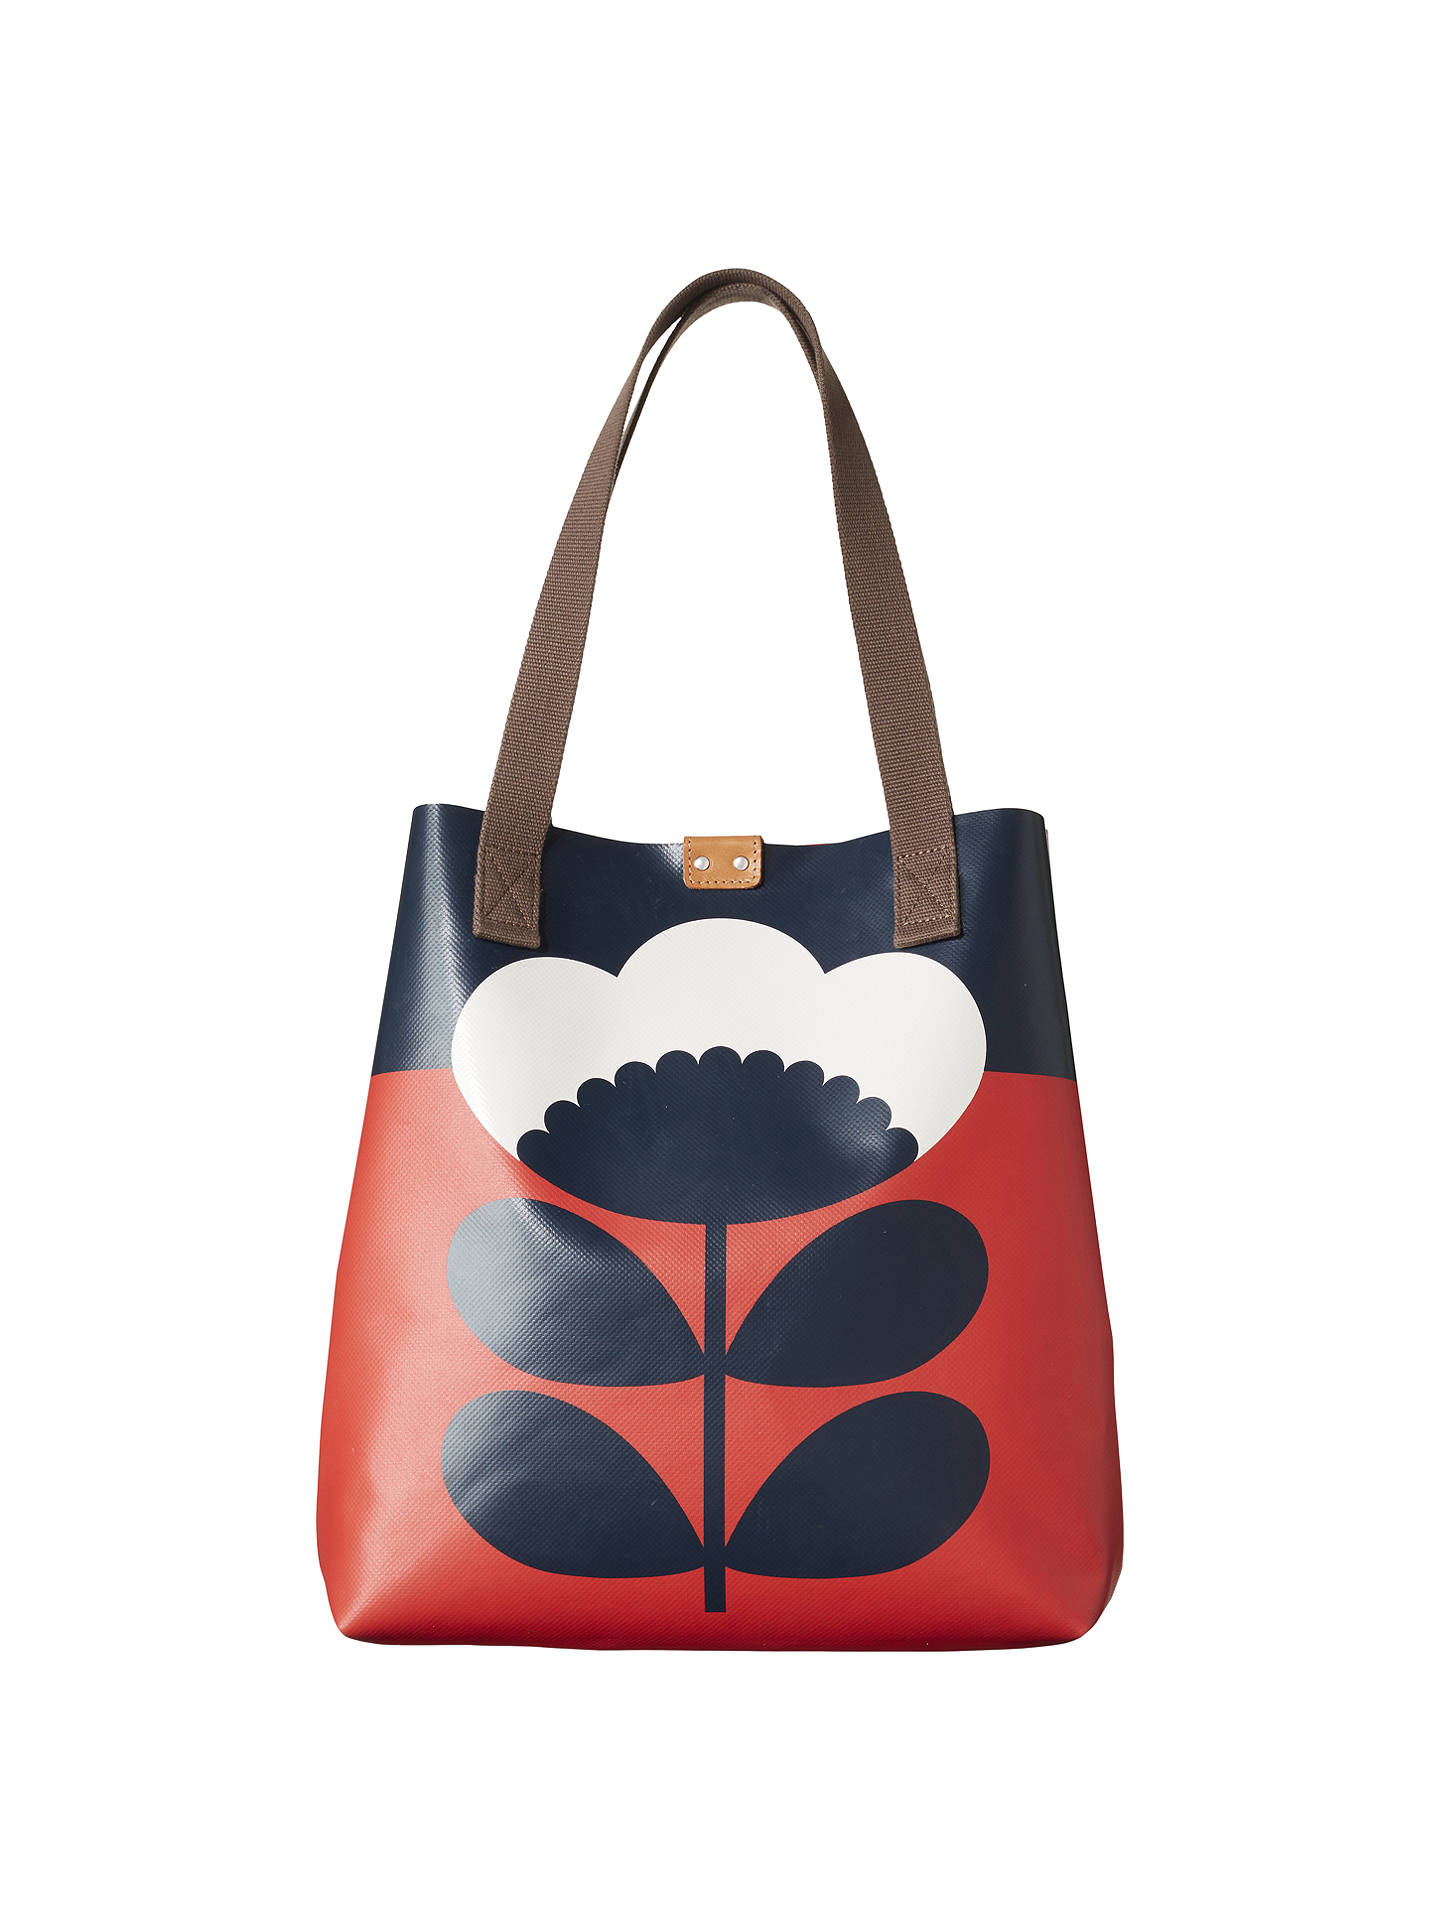 Orla Kiely Spring Bloom Tote Bag Red Online At Johnlewis